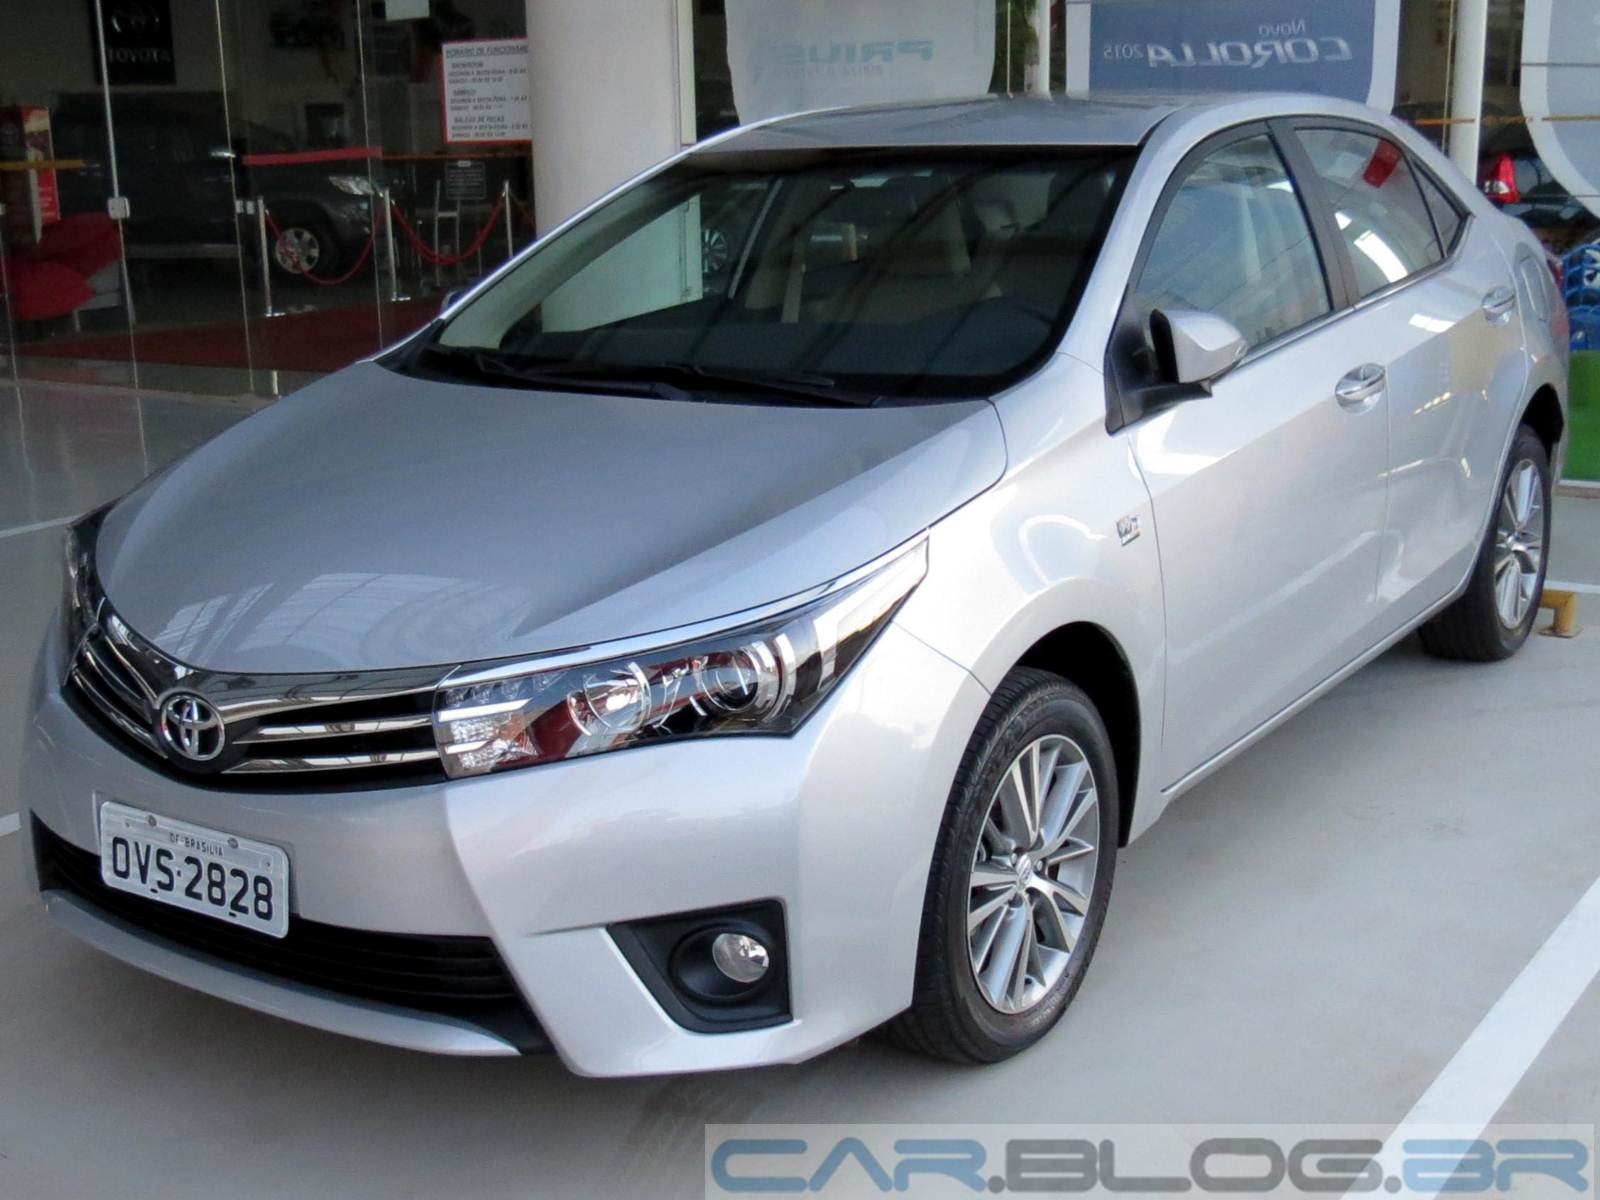 toyota corolla altis 2015 review amazing pictures and images look at the car. Black Bedroom Furniture Sets. Home Design Ideas